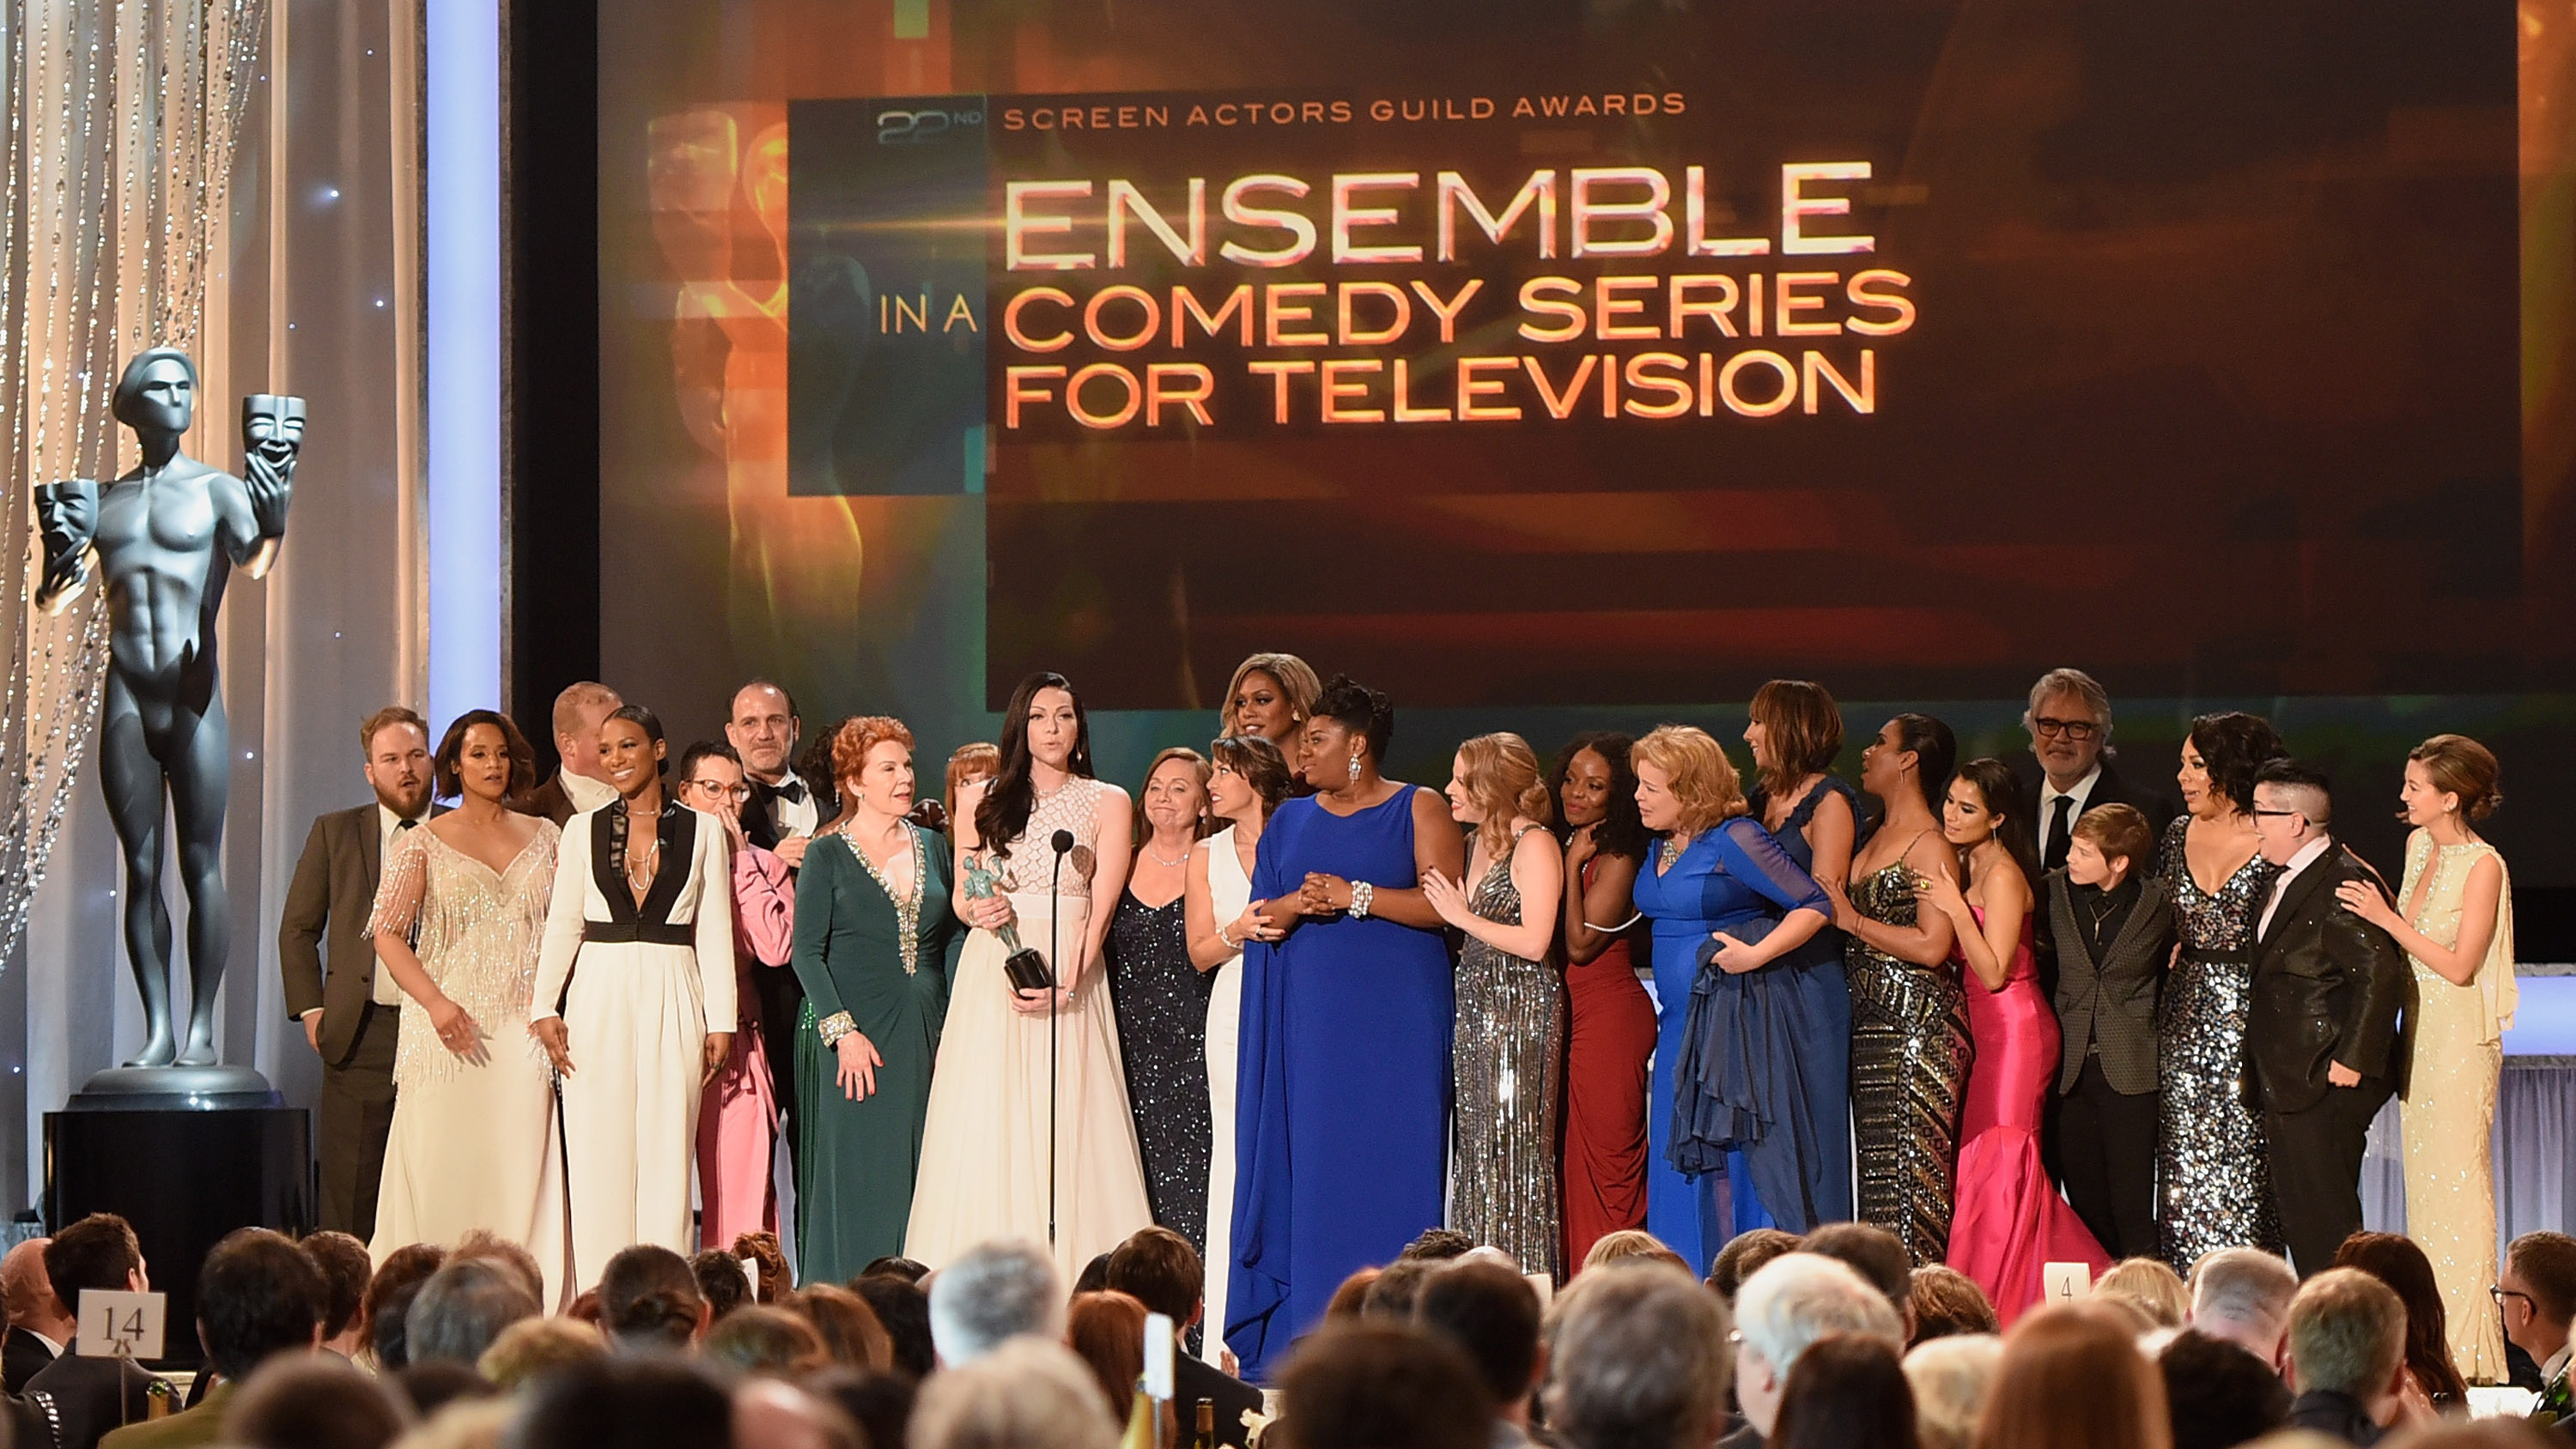 LOS ANGELES, CA - JANUARY 30:  The cast of 'Orange Is the New Black,' including actors Vicky Jeudy, Lori Petty, Uzo Aduba, Kate Mulgrew, Annie Golden, Laura Prepon, Dale Soules, Laverne Cox, and Michelle Hurst, accept Outstanding Performance by an Ensemble in a Comedy Series award onstage at the 22nd Annual Screen Actors Guild Awards at The Shrine Auditorium on January 30, 2016 in Los Angeles, California.  (Photo by Angela Weiss/Getty Images for Screen Actors Guild Foundation)